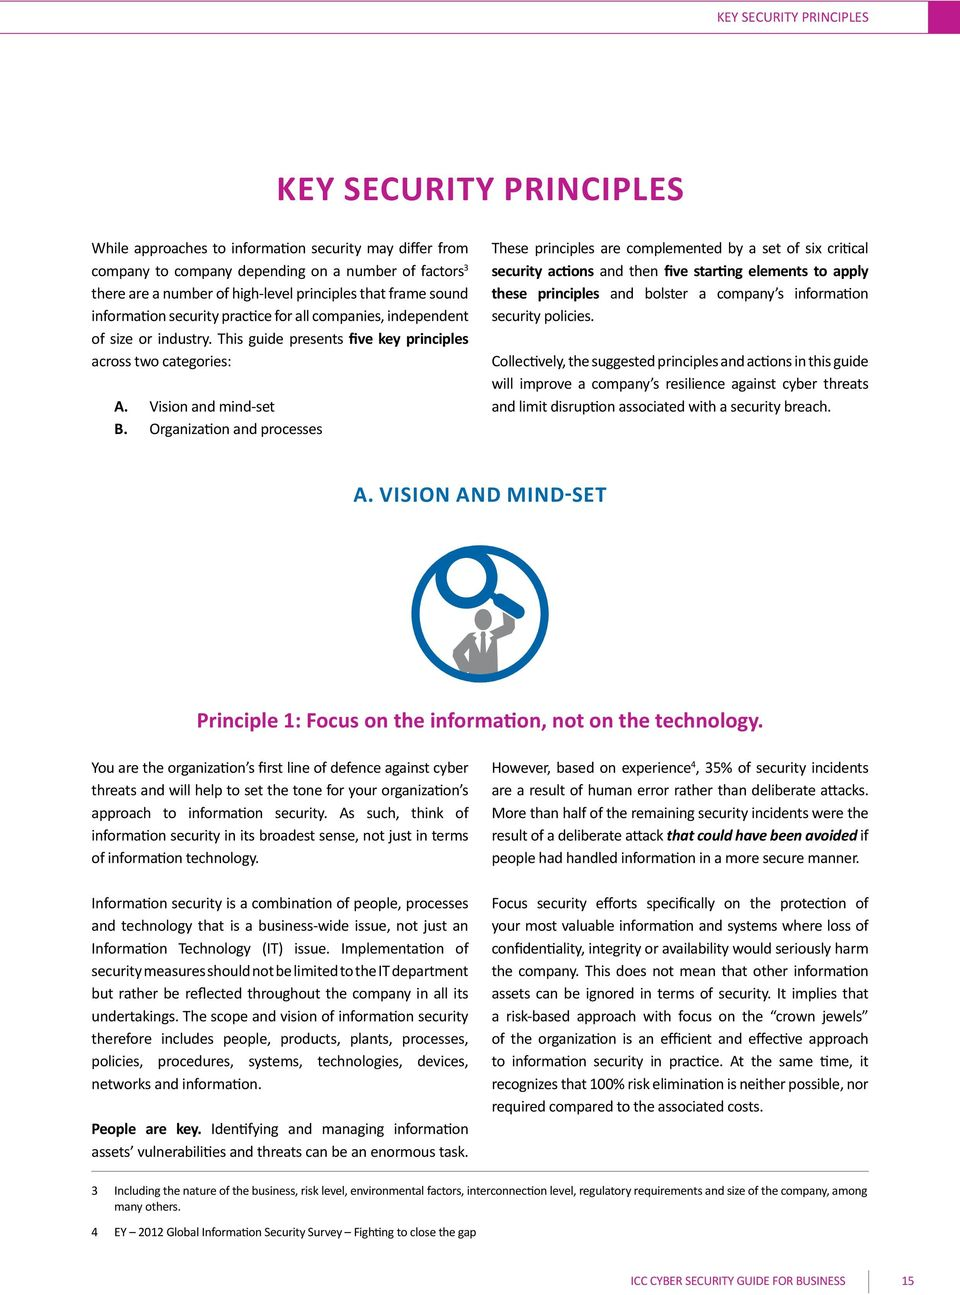 Organization and processes These principles are complemented by a set of six critical security actions and then five starting elements to apply these principles and bolster a company s information